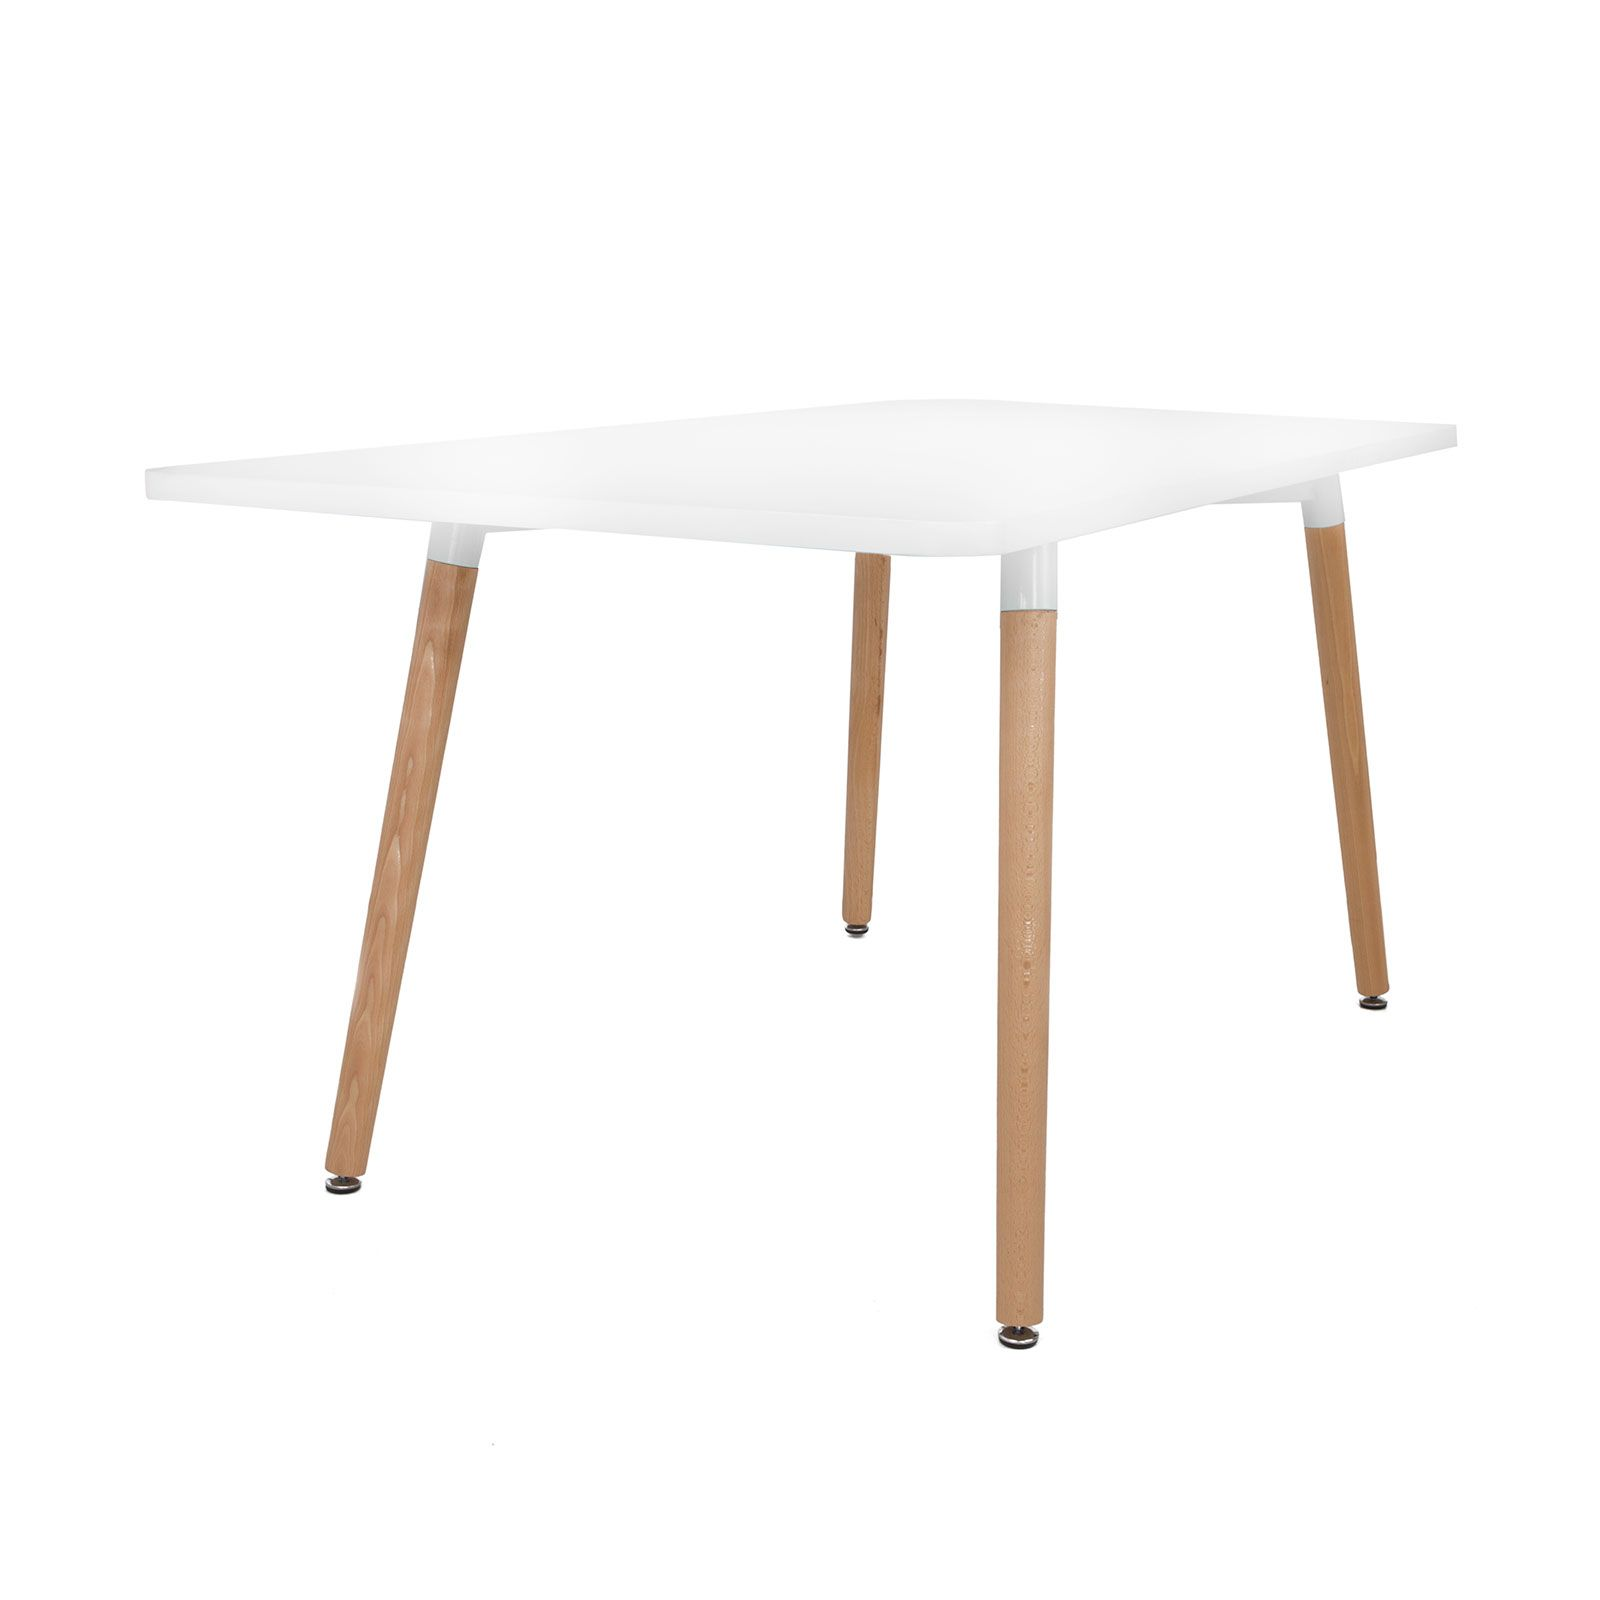 Glacier Dining Table Large Dining Table Dining Table Table [ 1600 x 1600 Pixel ]